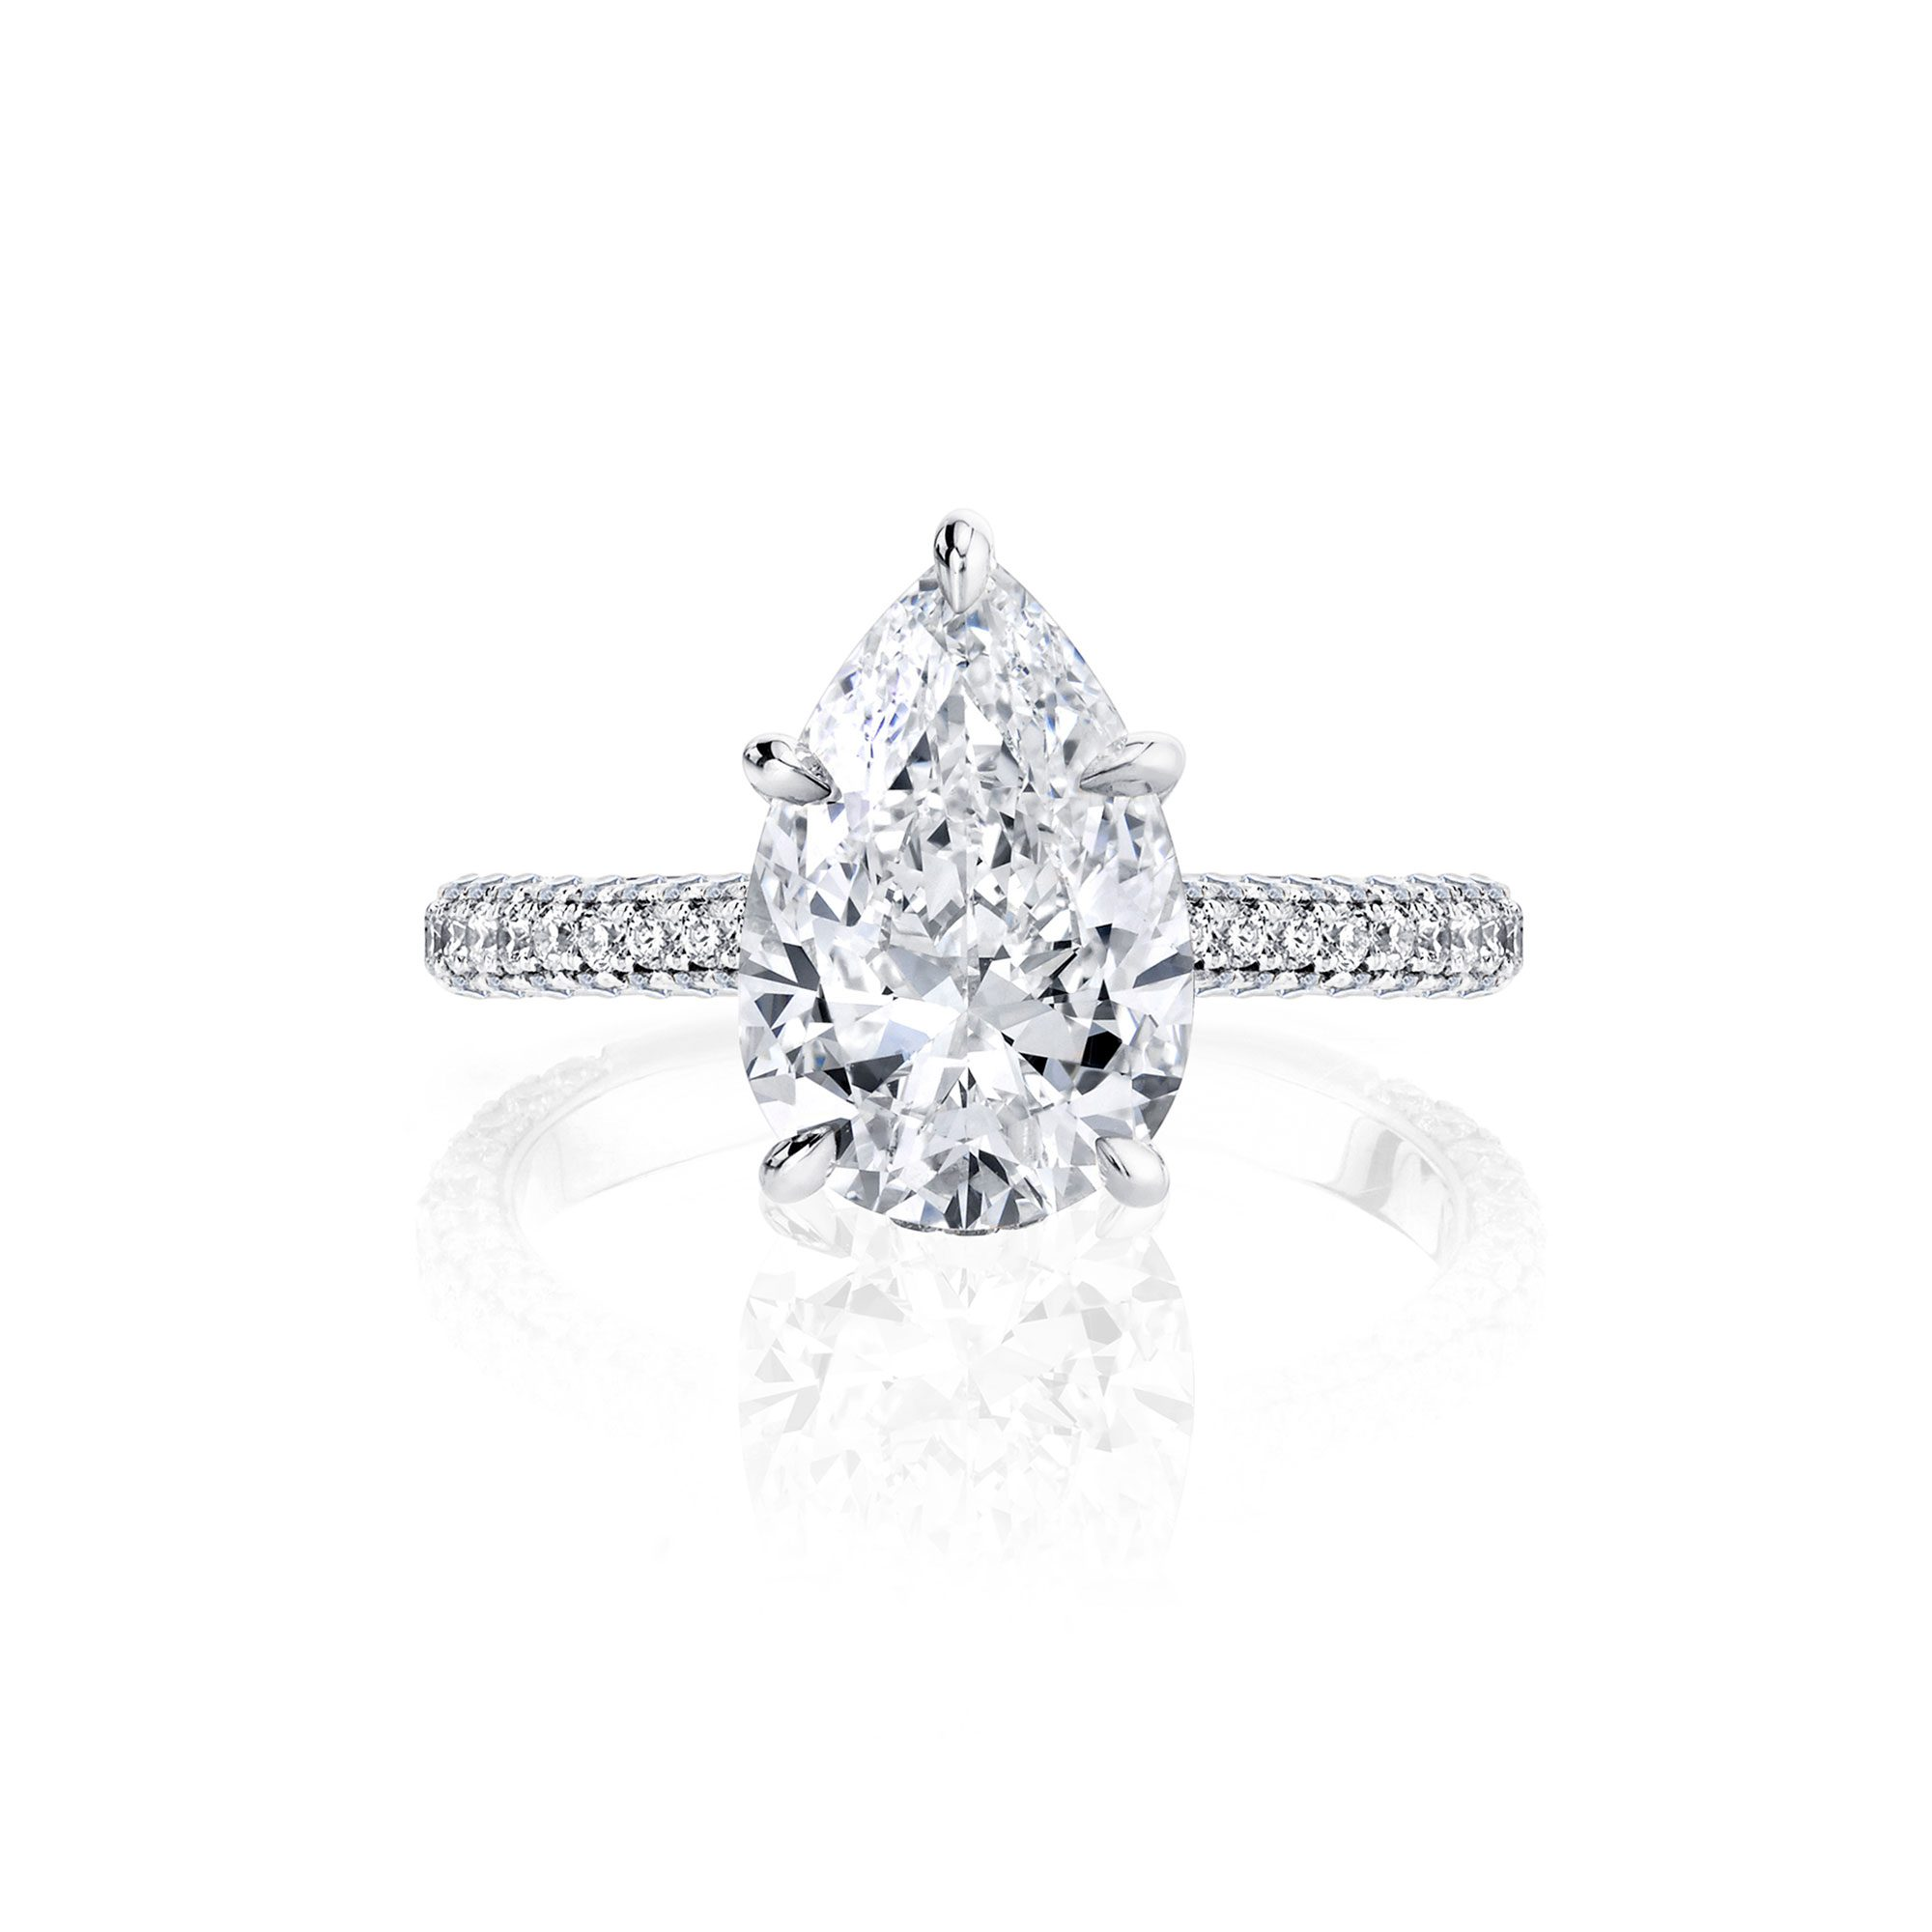 Jacqueline Pear Cut Diamond Solitaire Engagement Ring and Pavé Band in White Gold from Oui by Jean Dousset